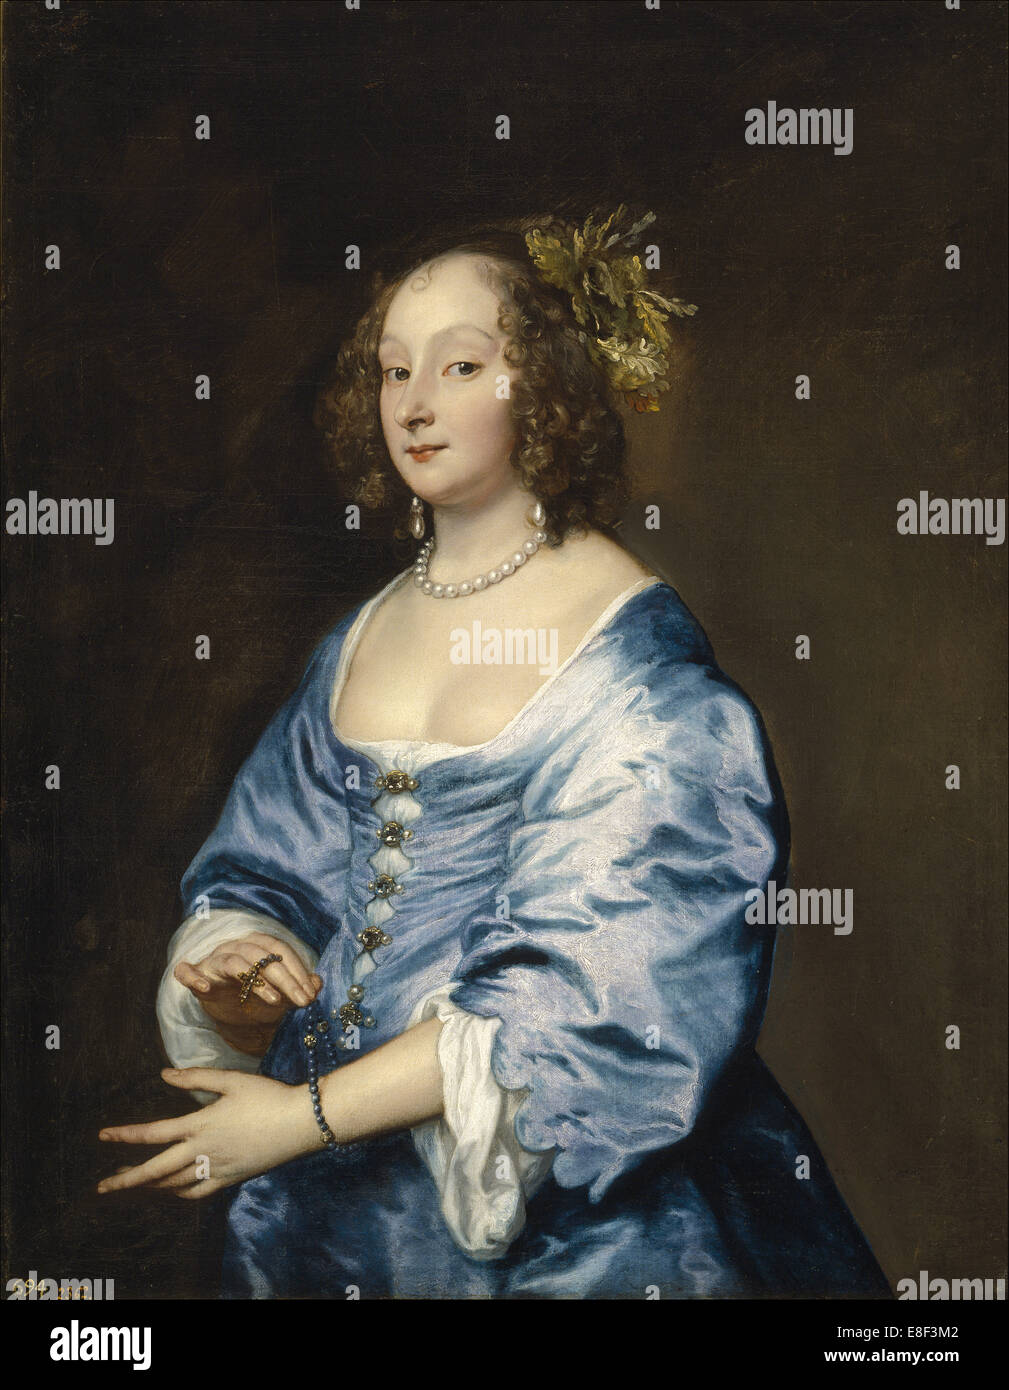 Portrait of Mary (née Ruthven), Lady van Dyck. Artist: Dyck, Sir Anthony van (1599-1641) - Stock Image